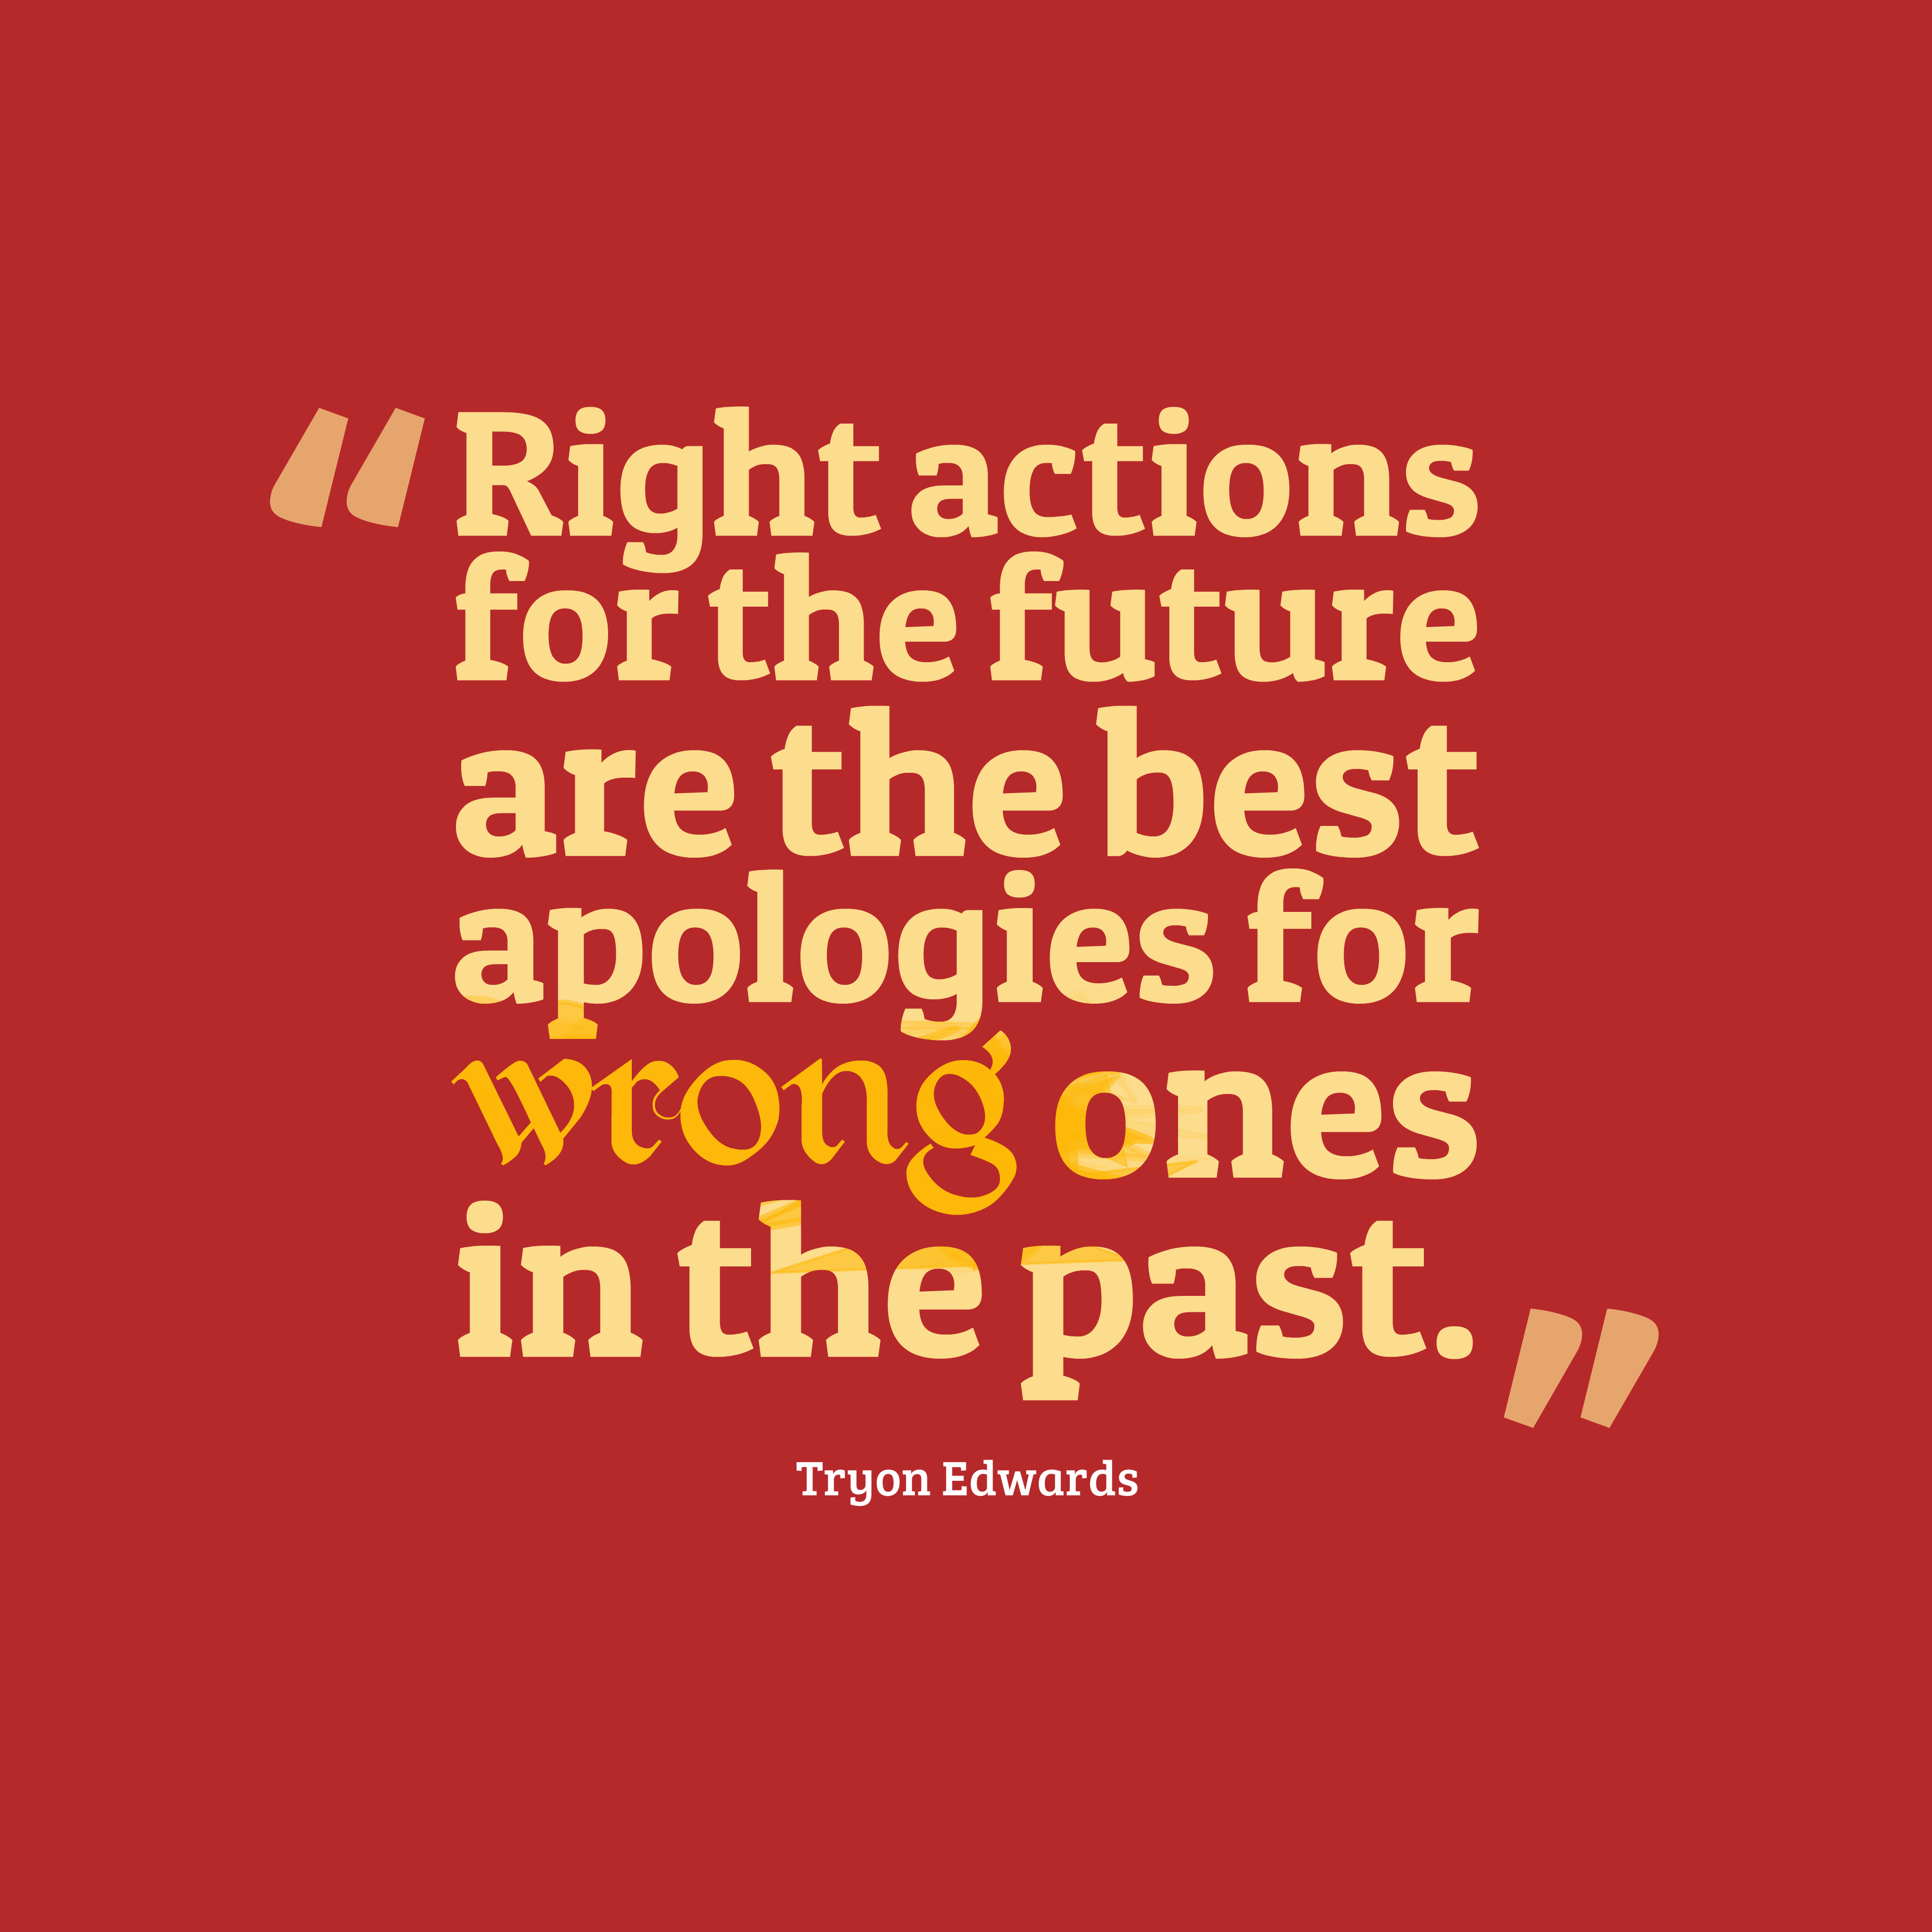 Quotes image of Right actions for the future are the best apologies for wrong ones in the past.